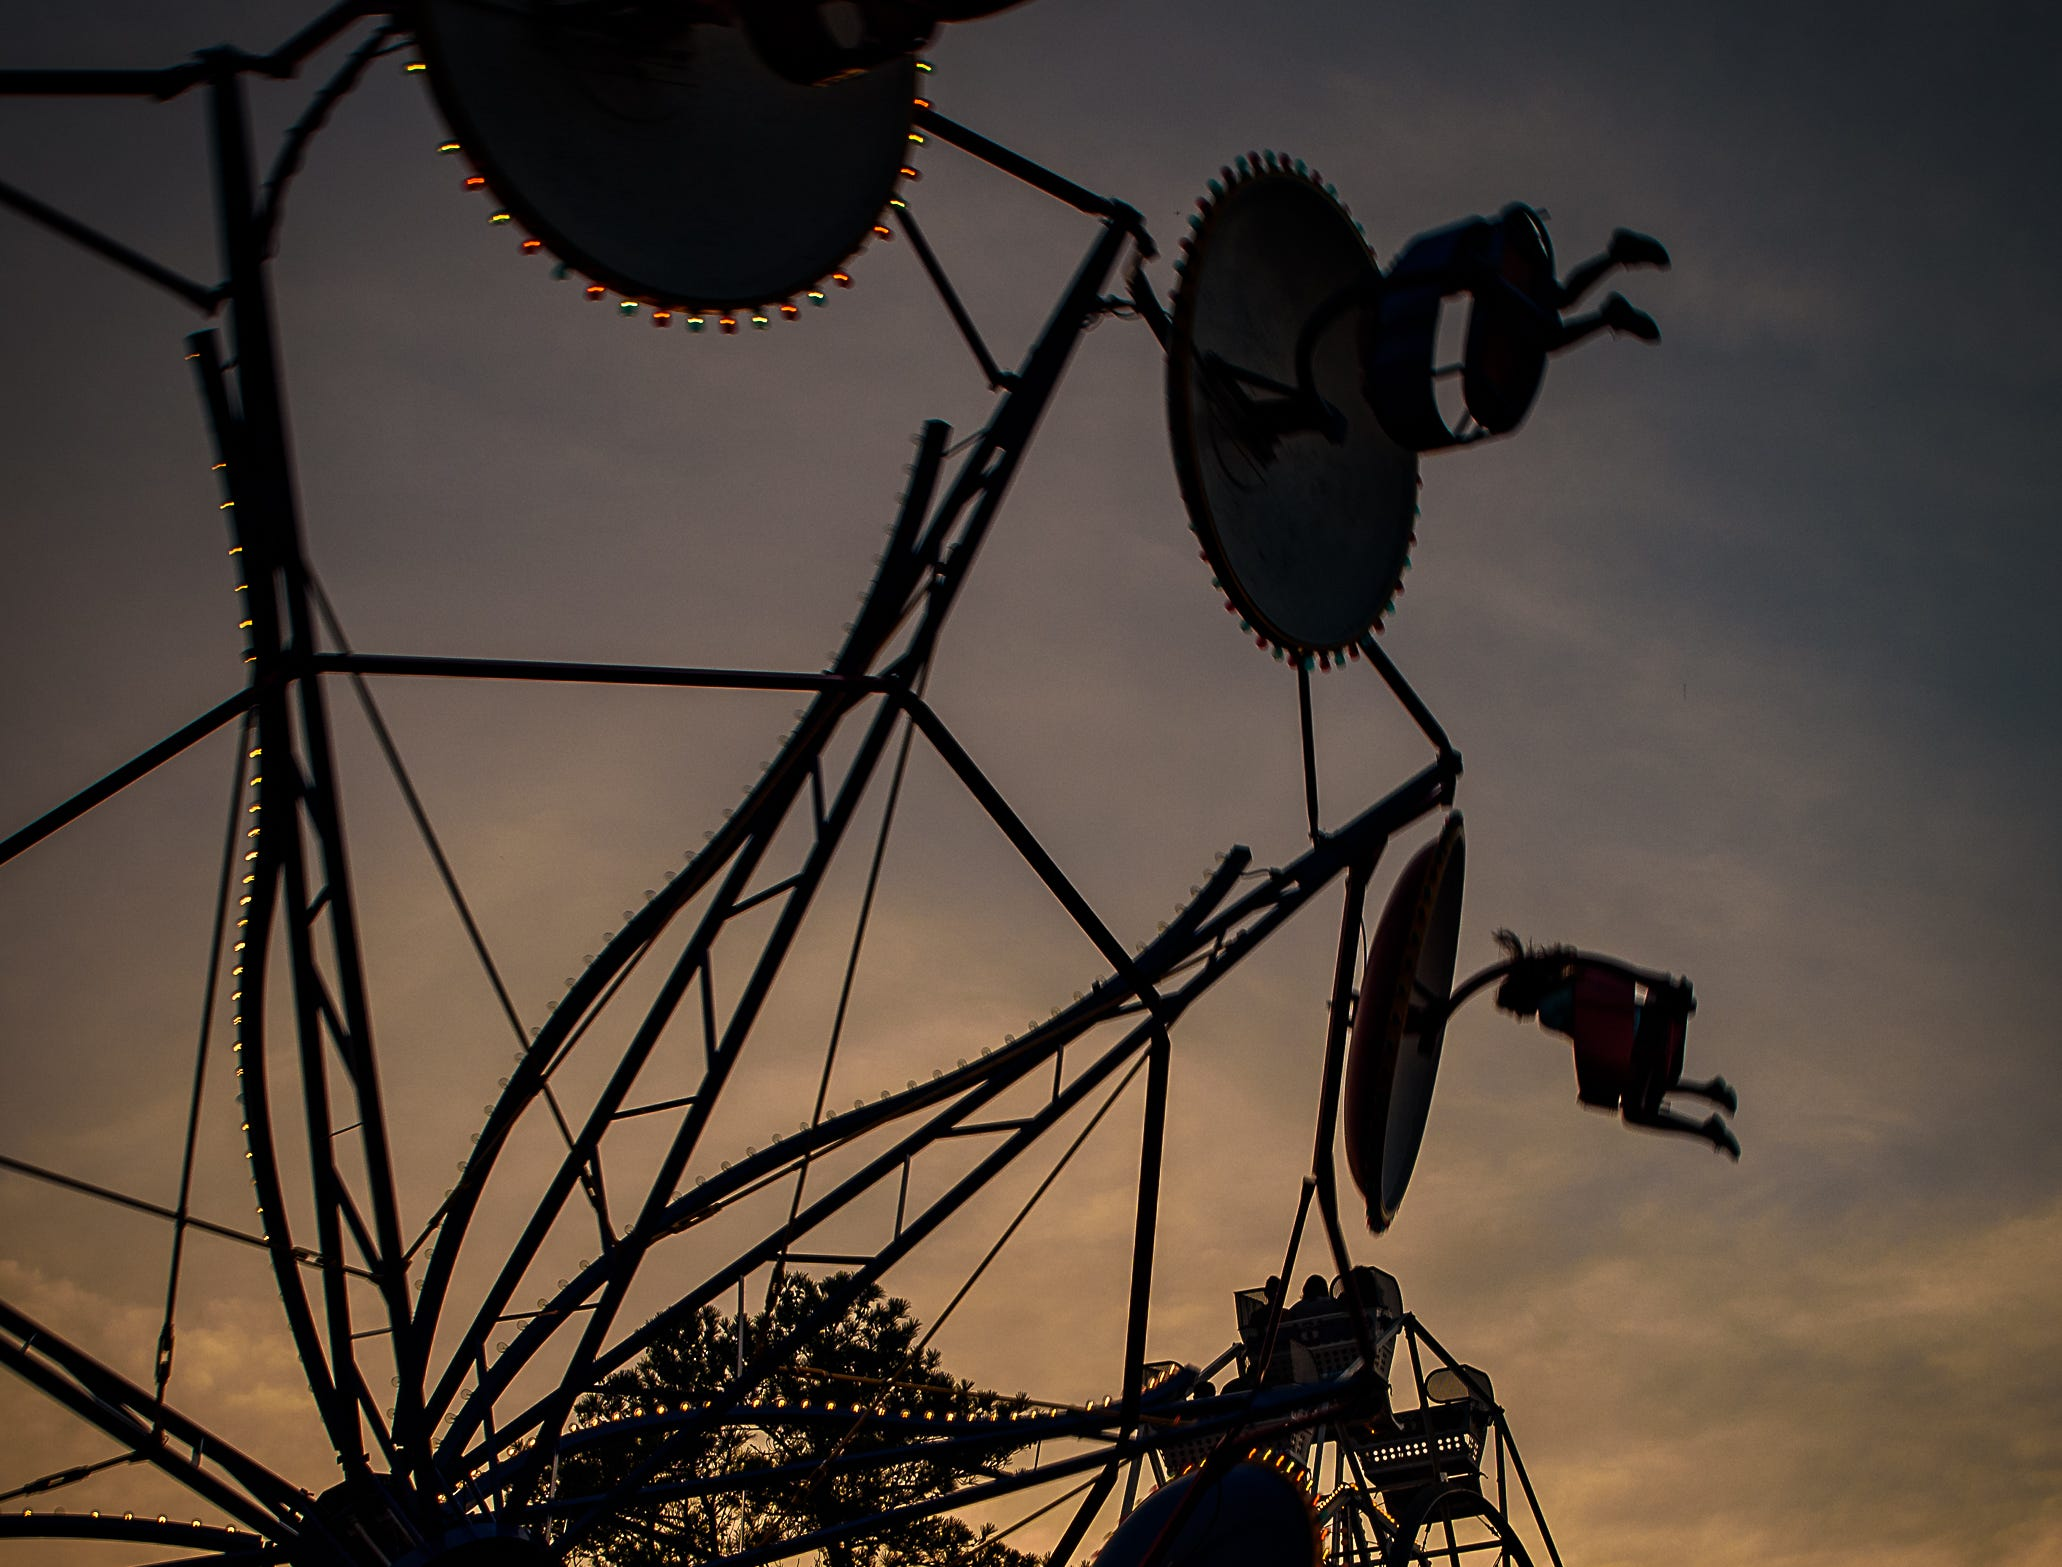 The Ferris Wheels and The Paratrooper against the Chincoteague sunset at the Chincoteague Fireman's Carnival.